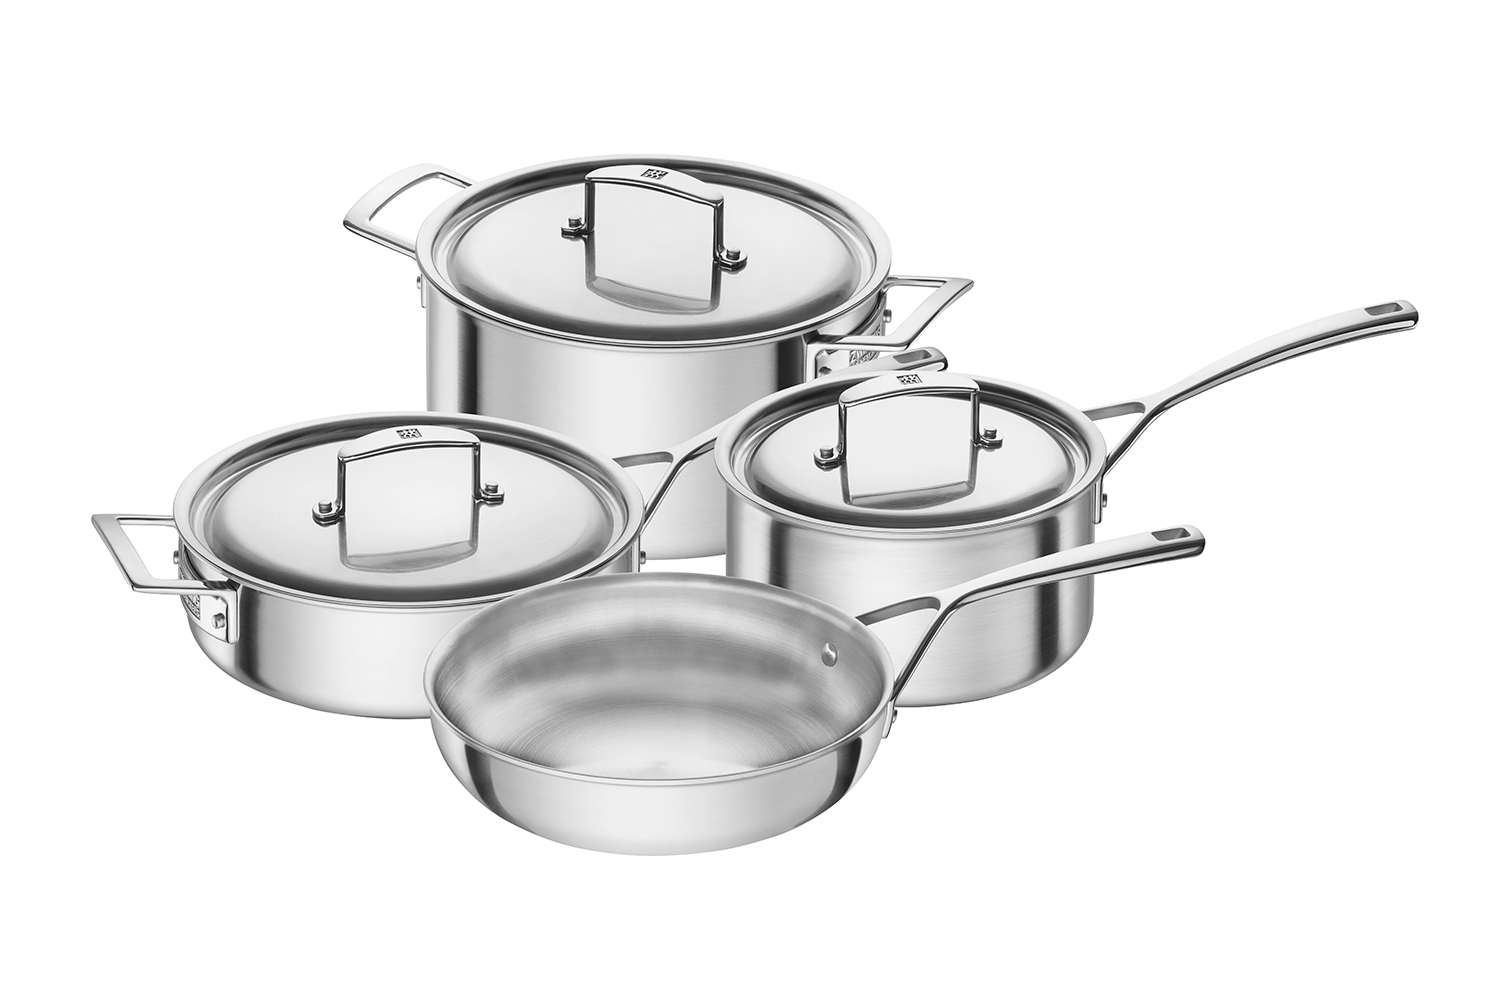 Zwilling Aurora 5-Ply Stainless Steel 7 Piece Cookware Set